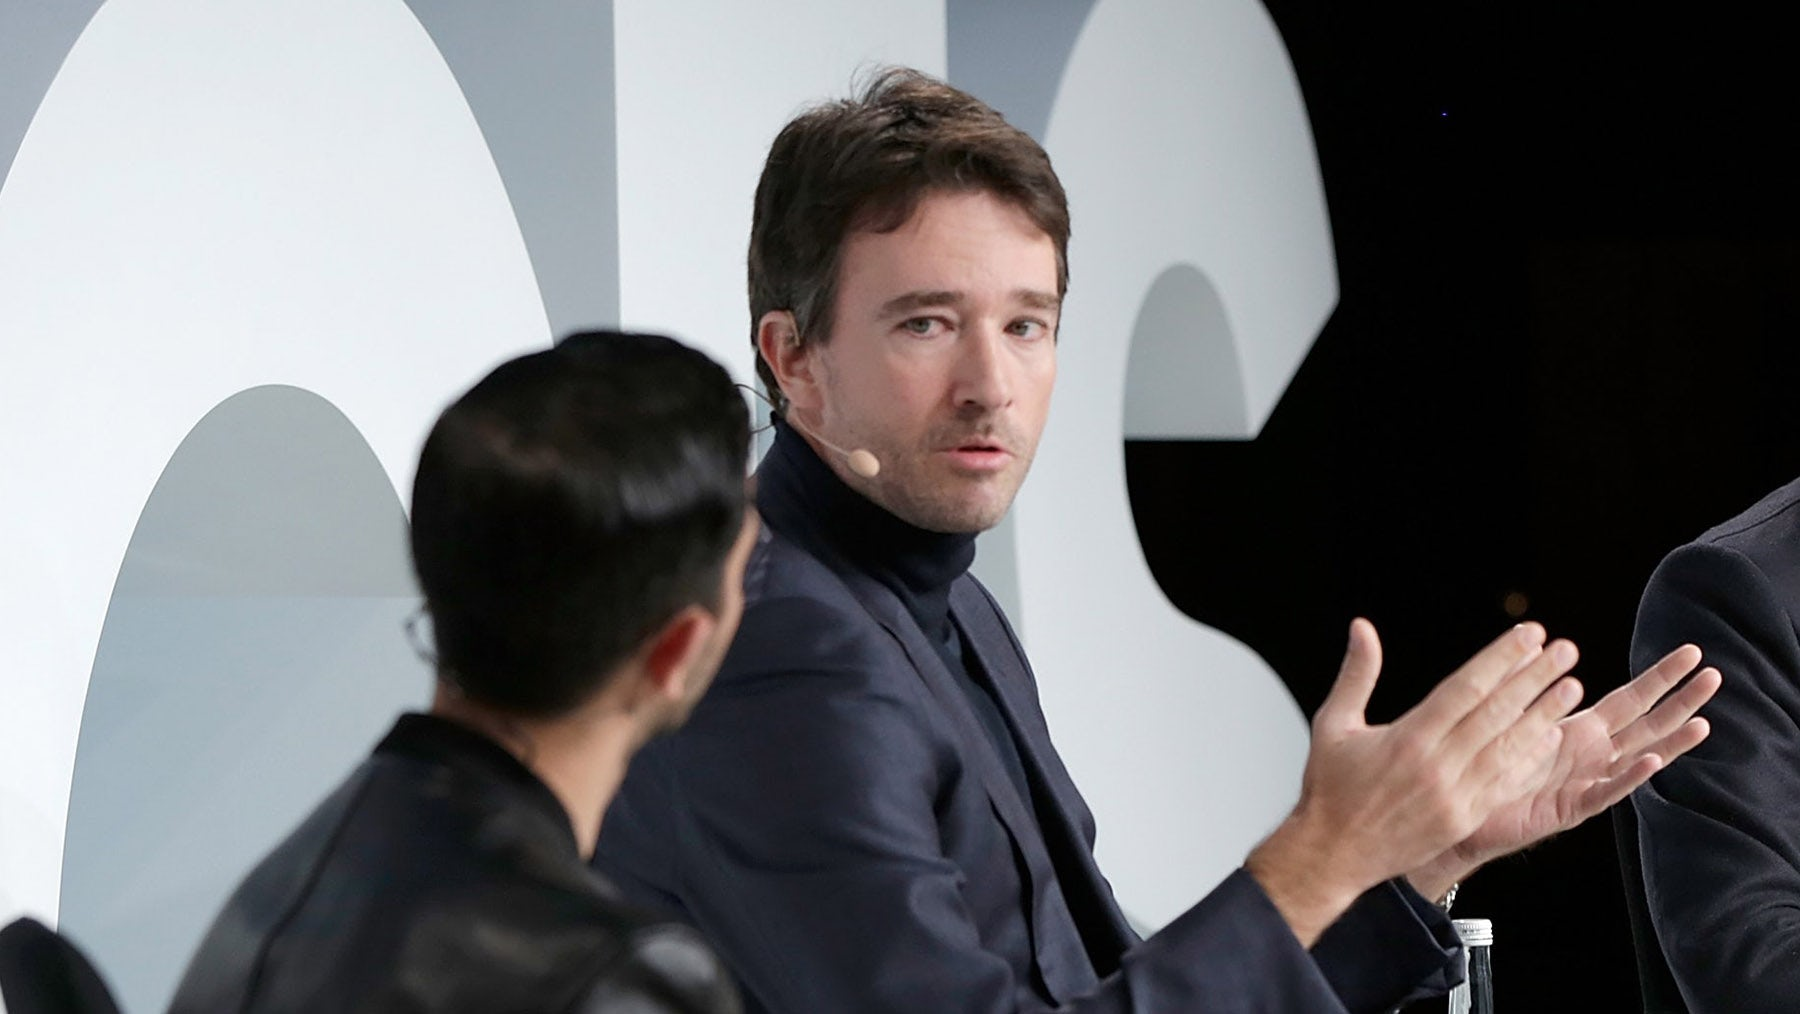 Antoine Arnault speaks on stage at BoF VOICES | Source: Getty